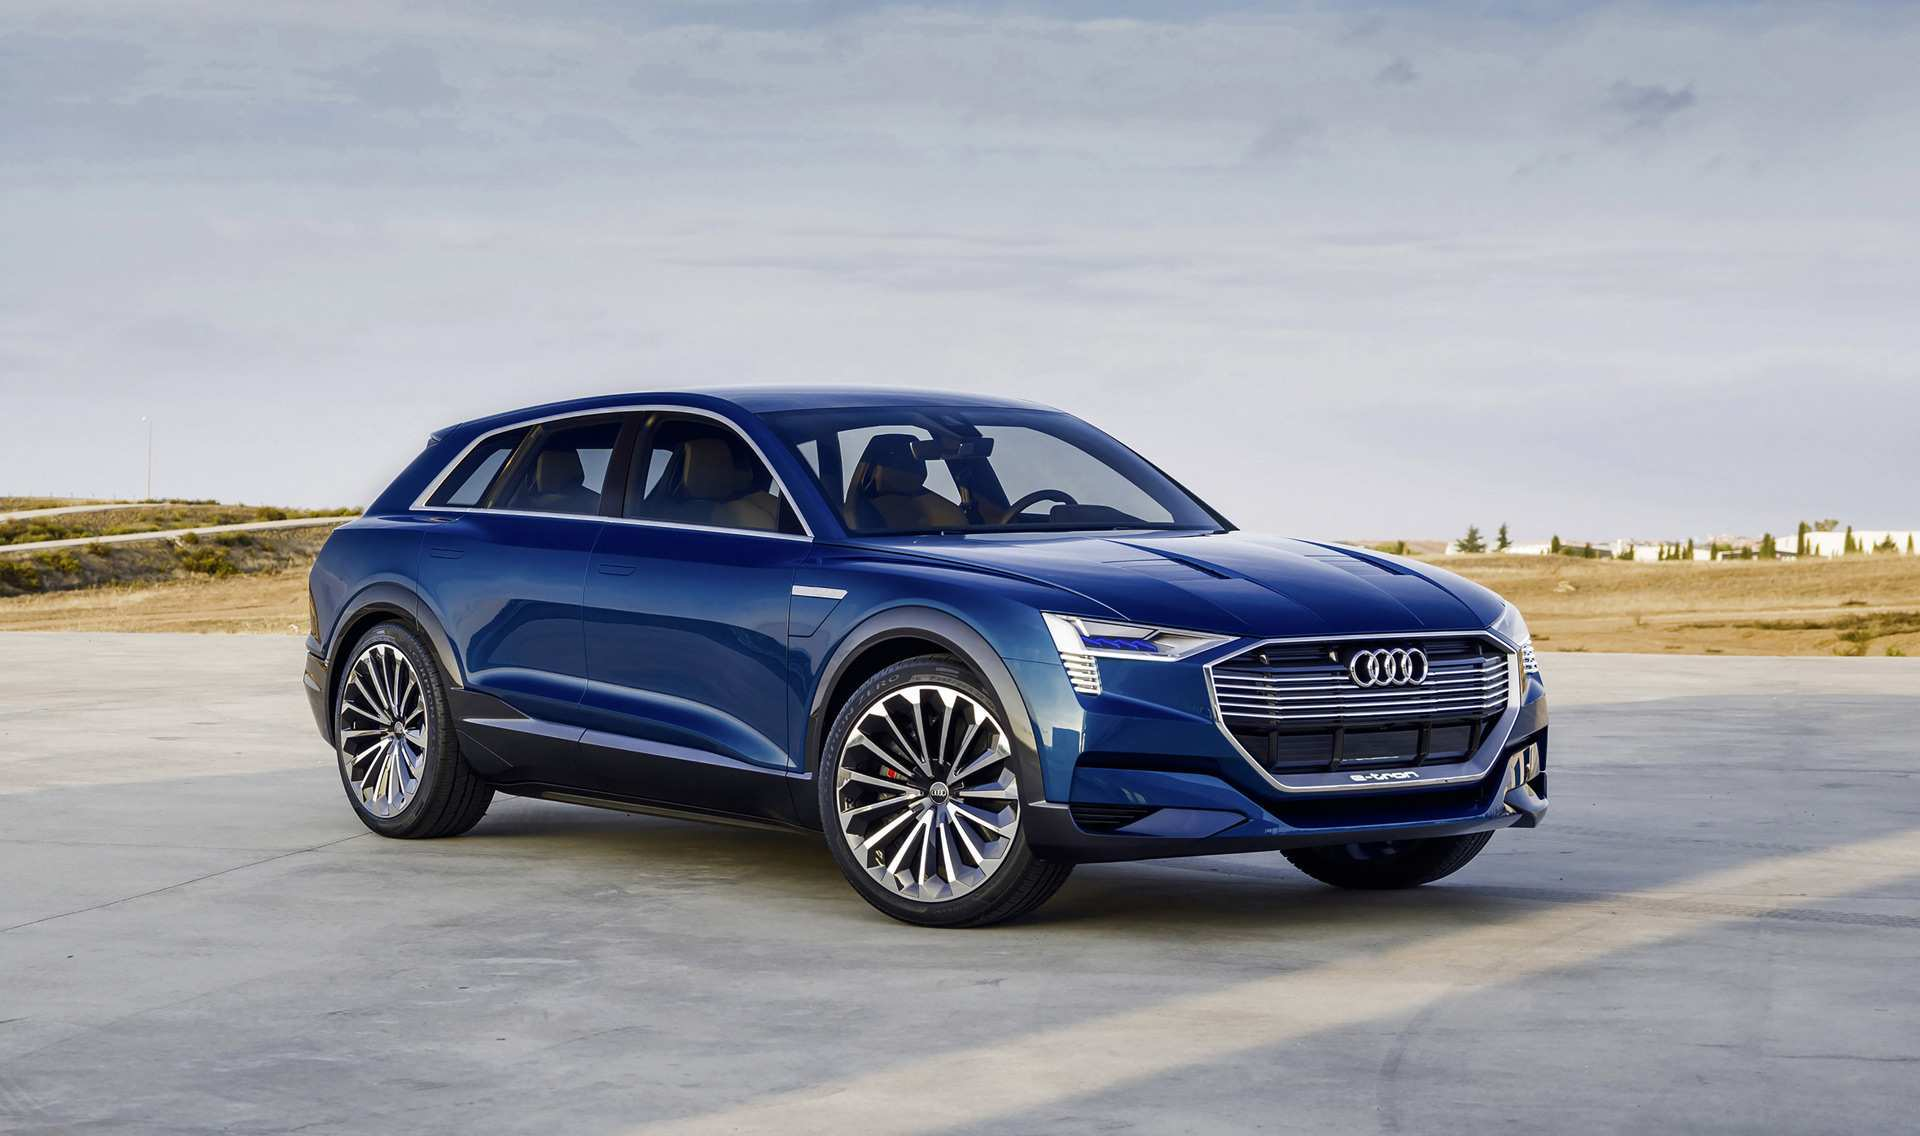 91 A Audi Electric Suv 2020 Exterior